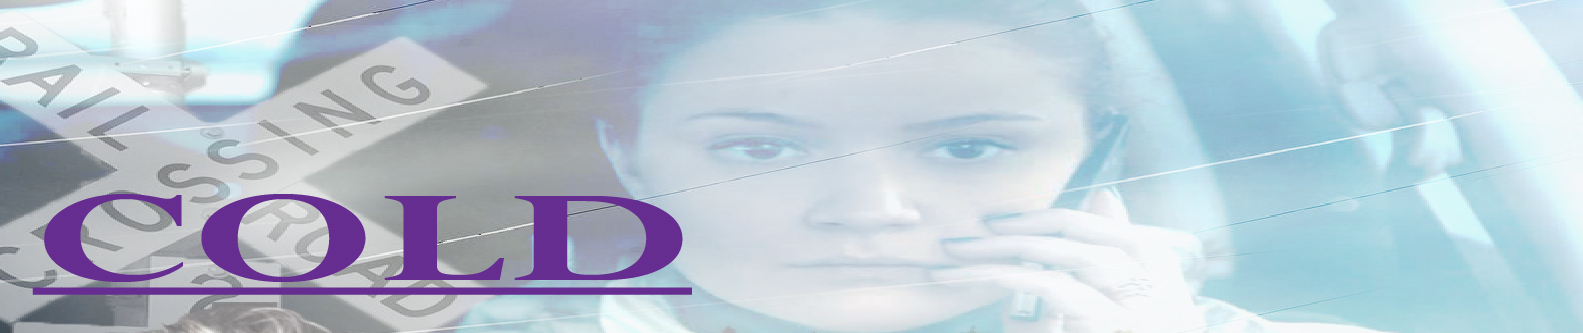 Cold_Banner1